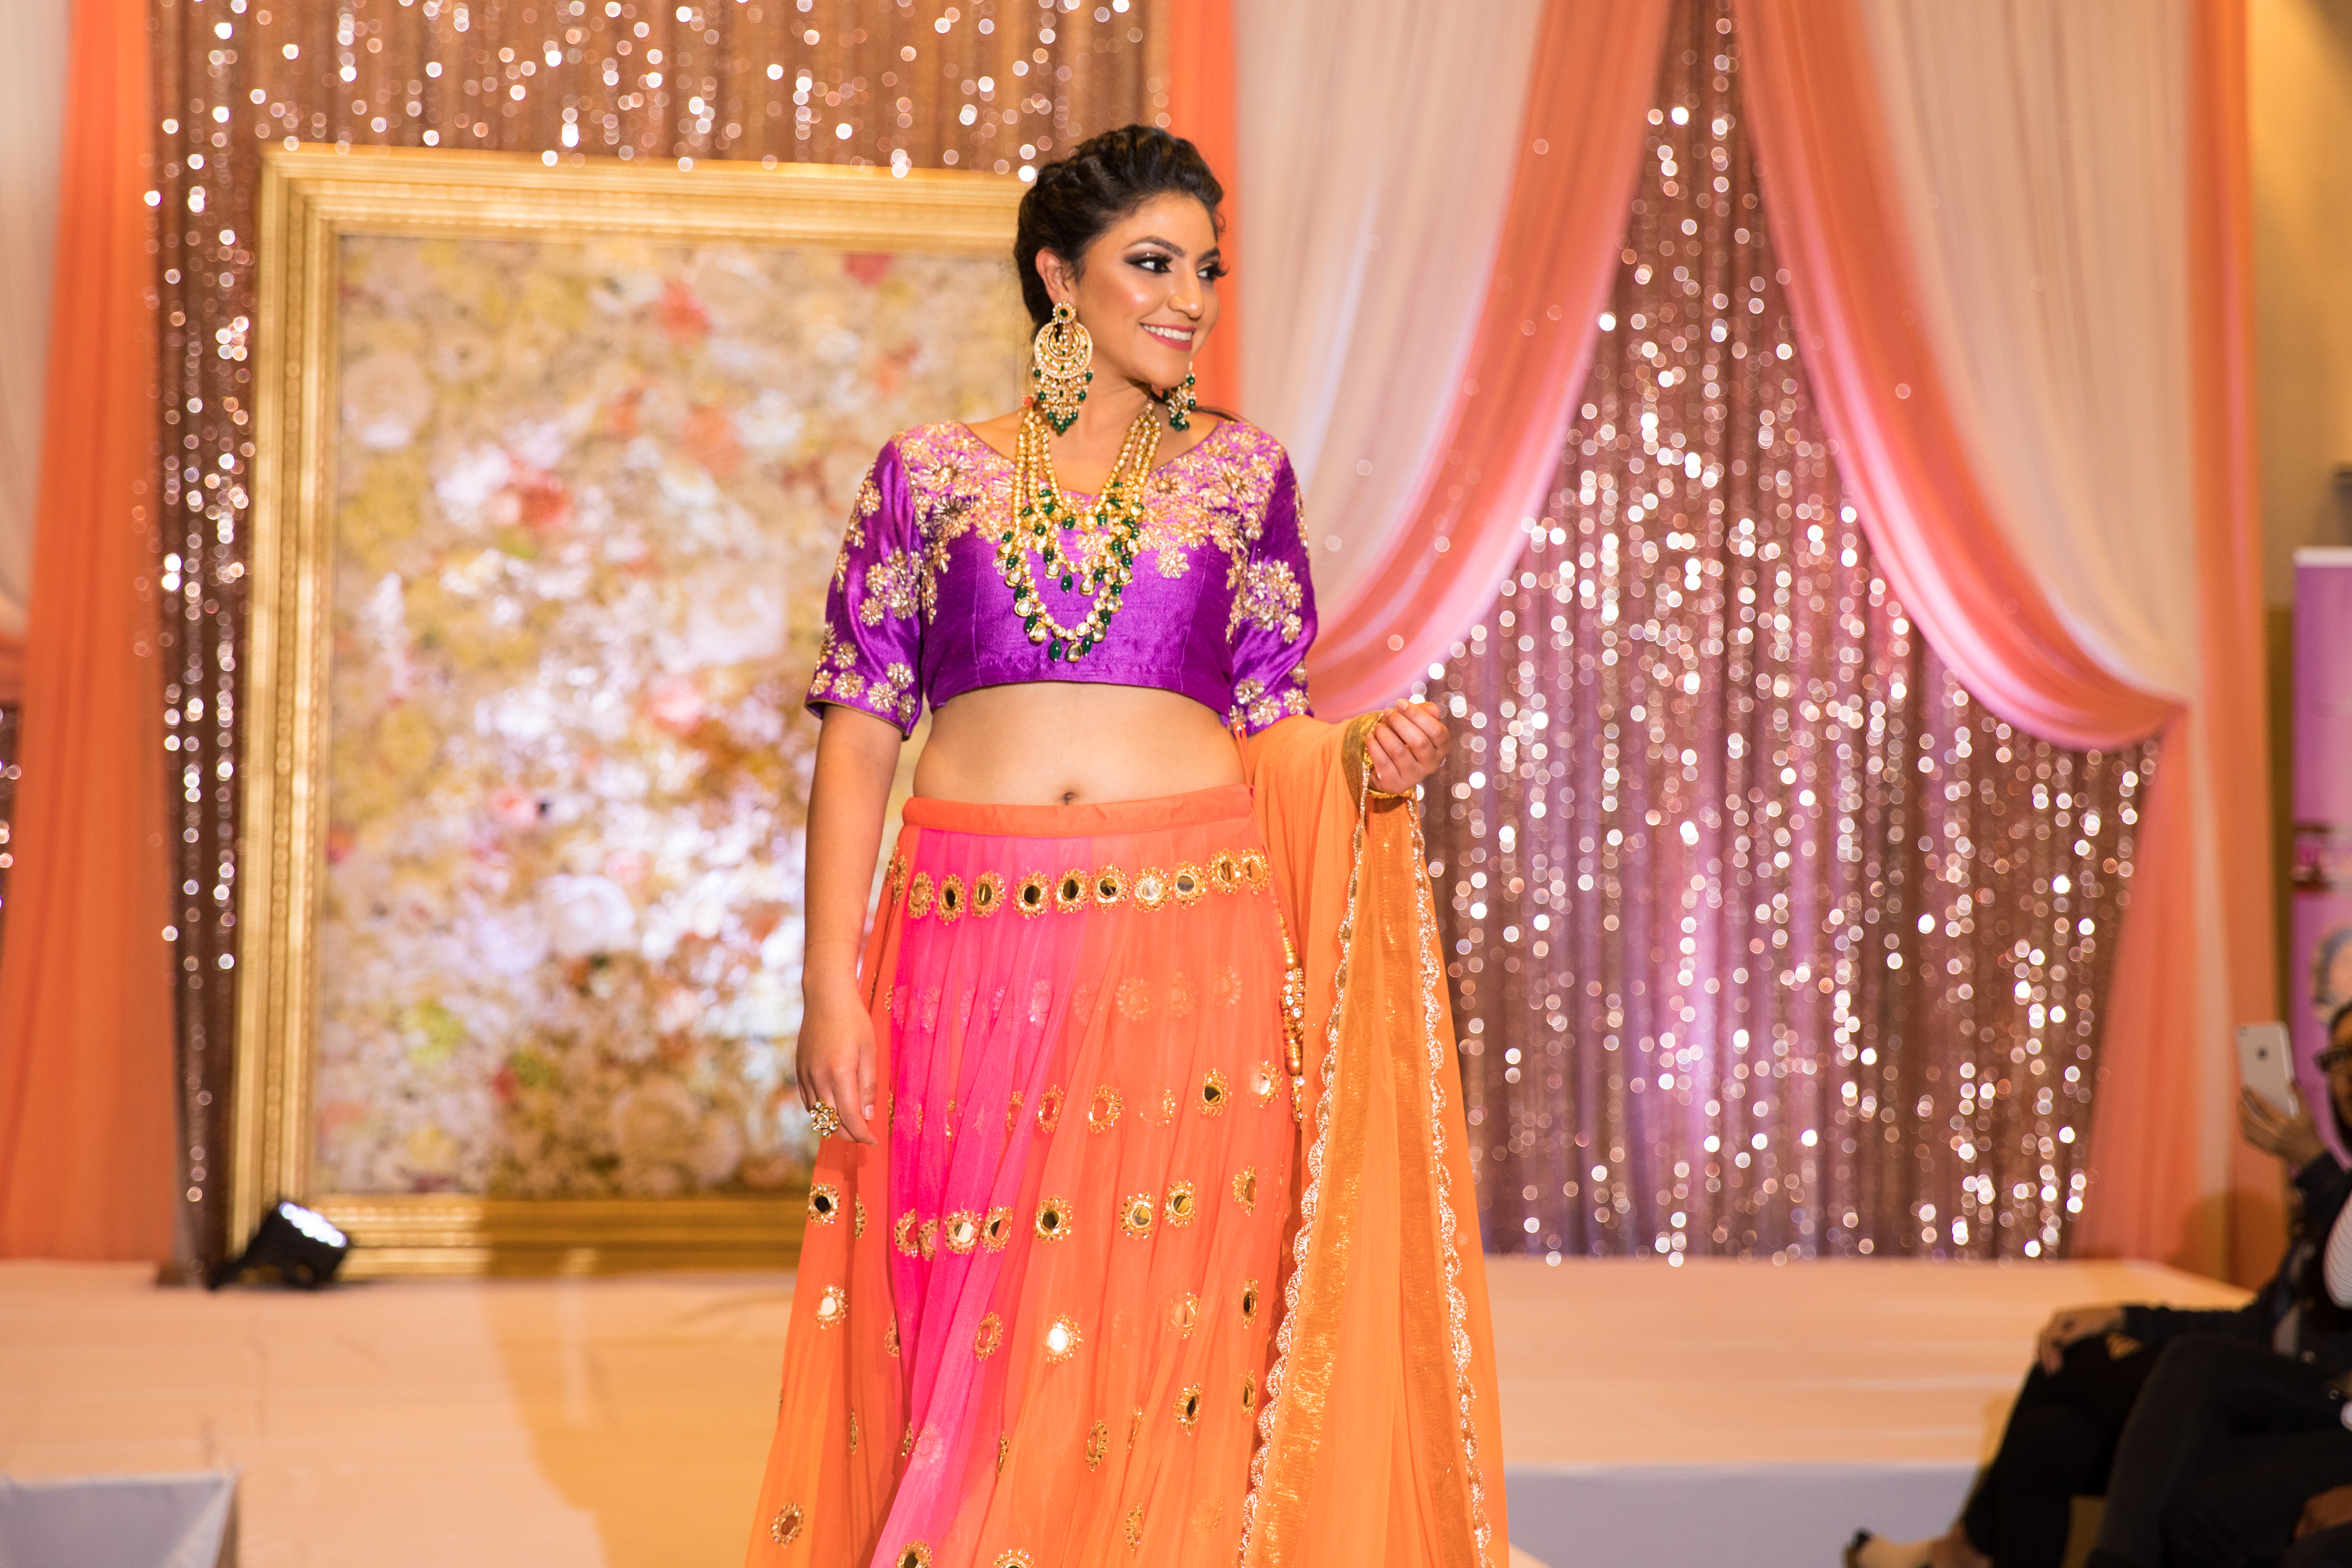 sf-bayarea-indian-wedding-bridal-show-photographer-edcarlogarcia-B35A1922